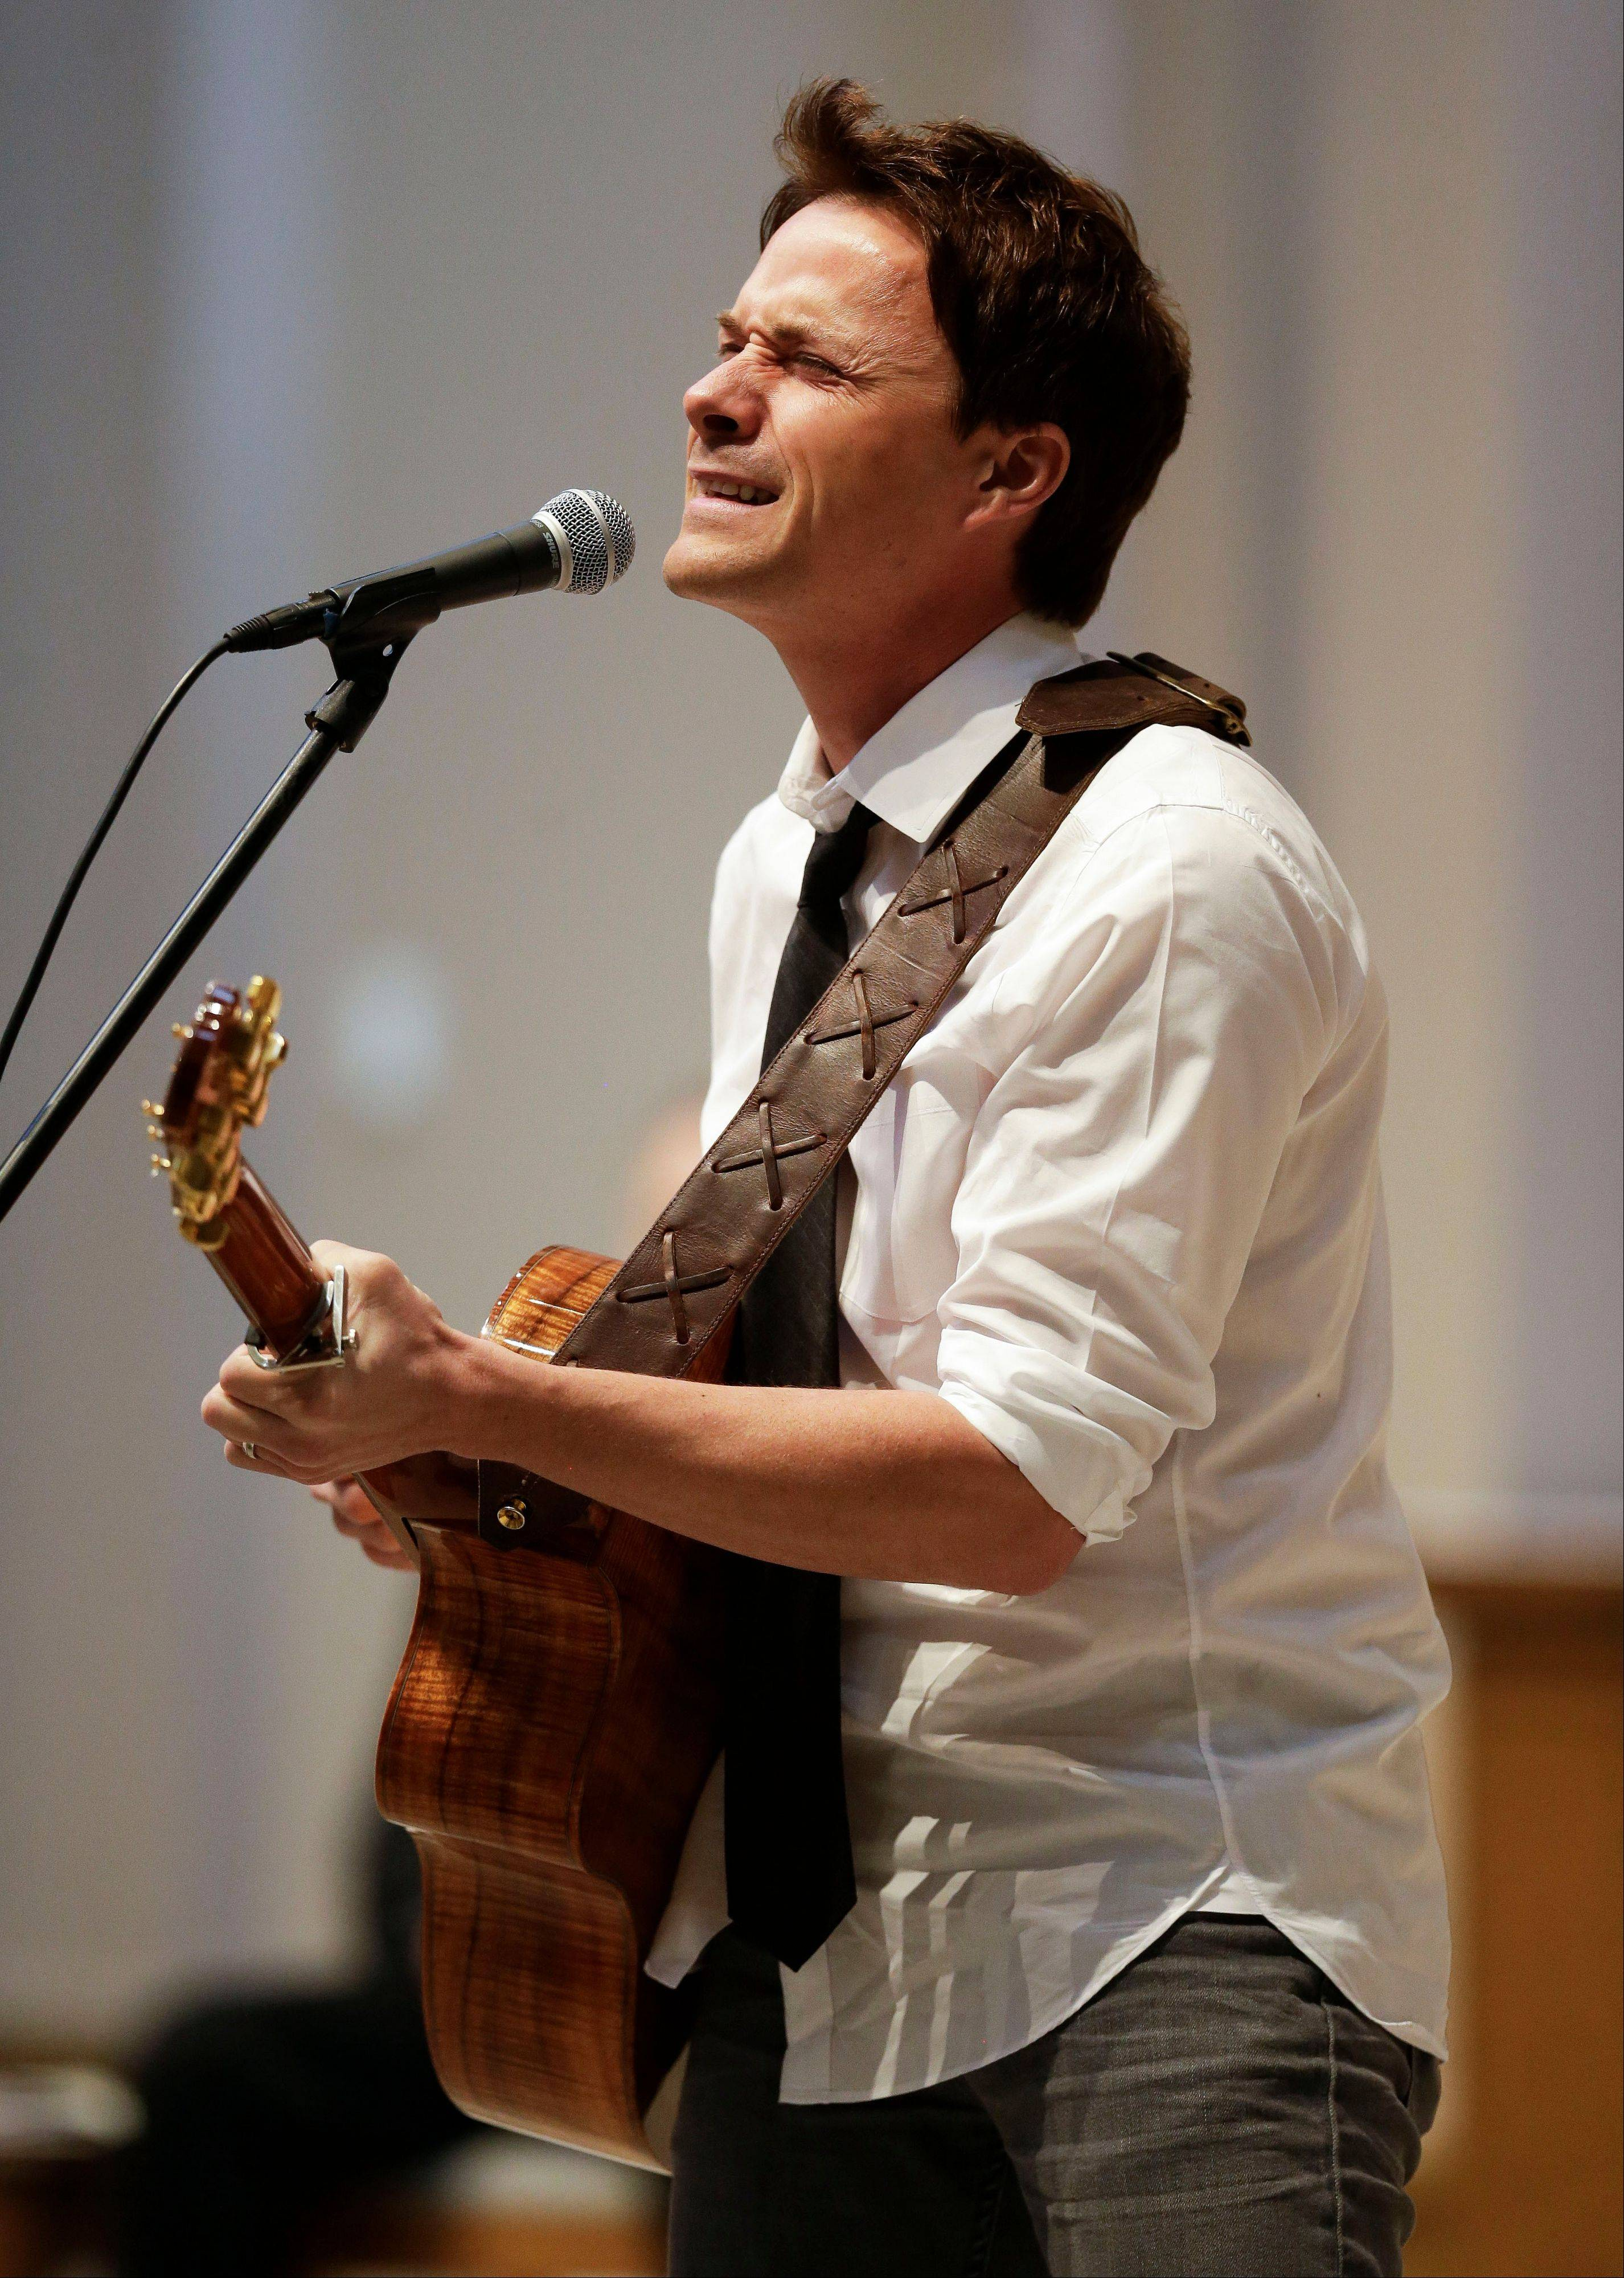 Bryan White performs during a memorial service for fellow country singer Mindy McCready on Wednesday in Nashville, Tenn.